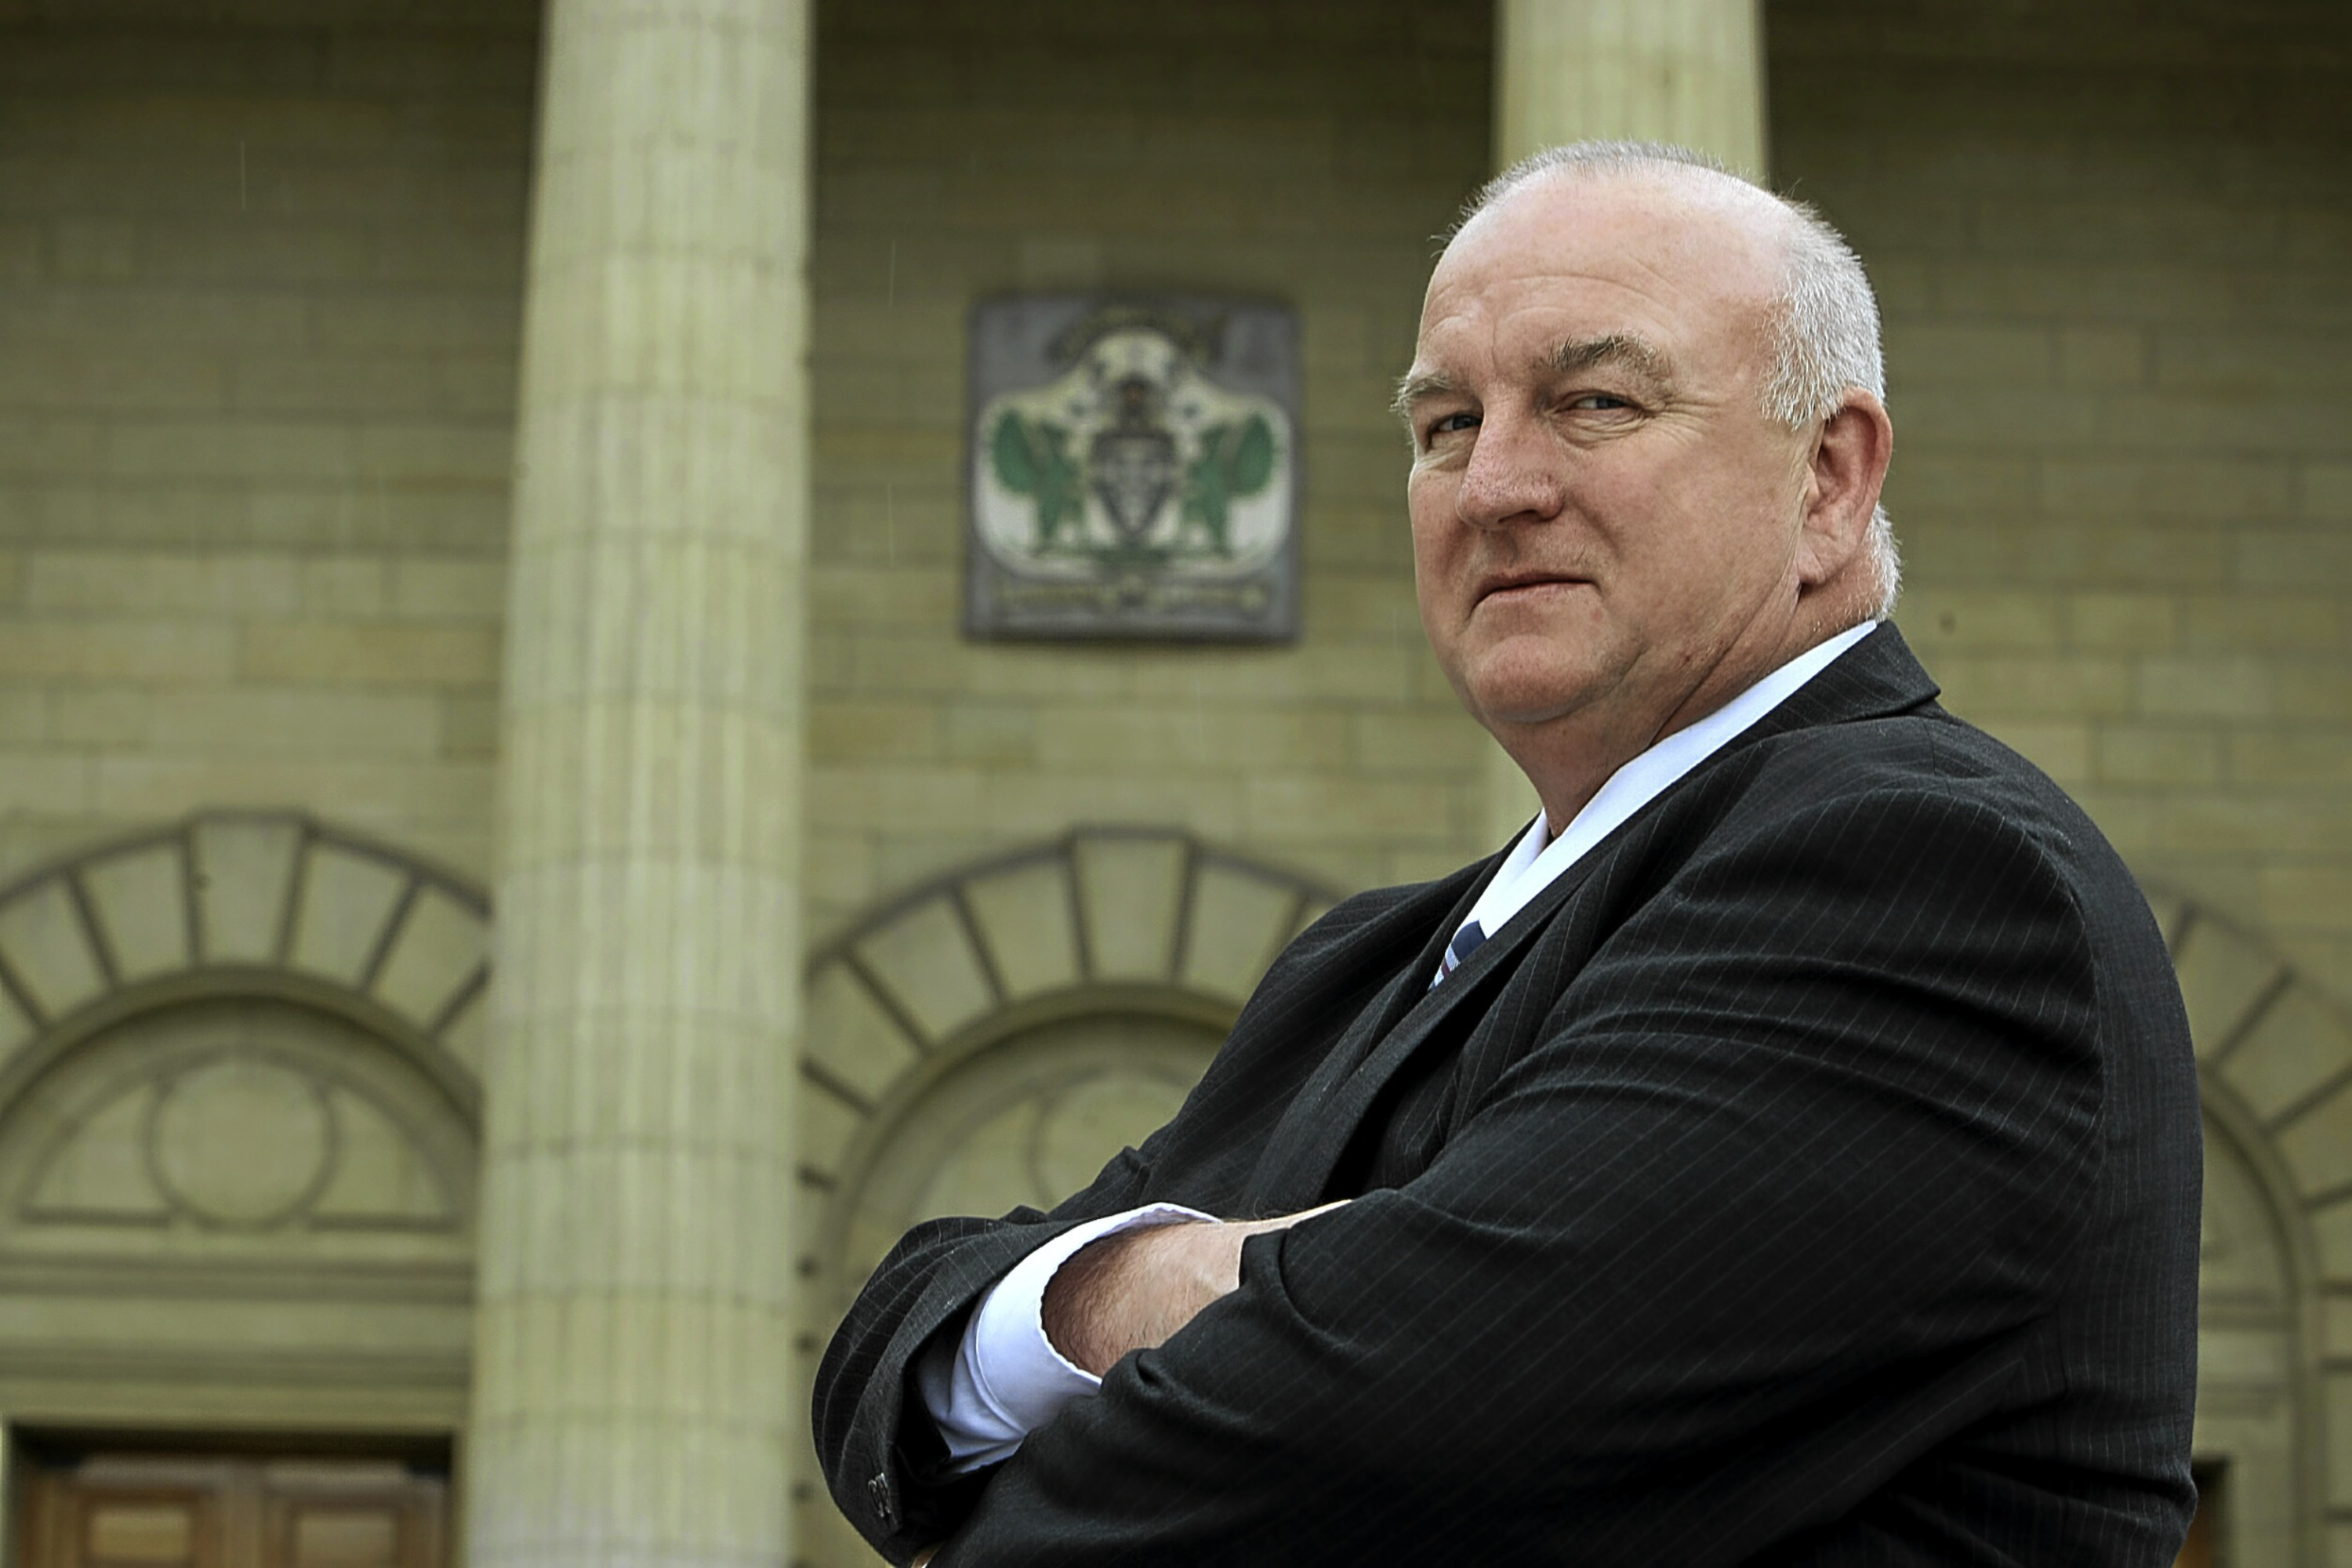 Kevin Keenan couldn't make it to the City Chambers on budget day.